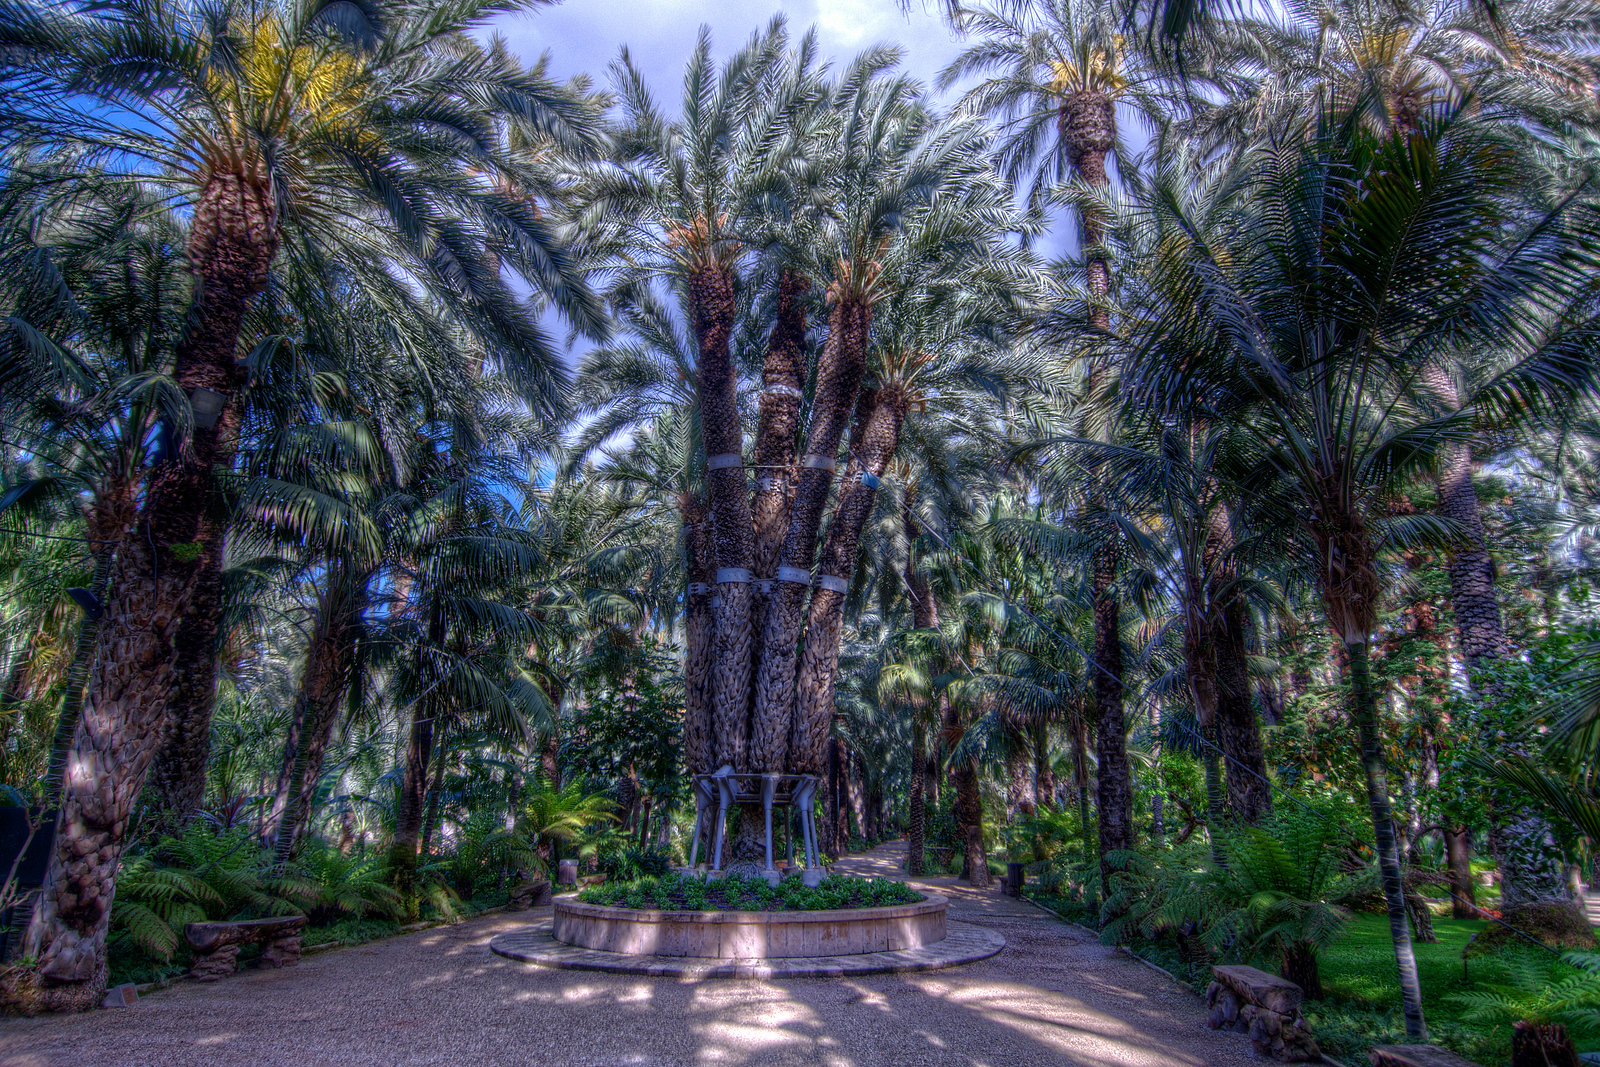 Palmeral of Elche UNESCO World Heritage Site, Spain